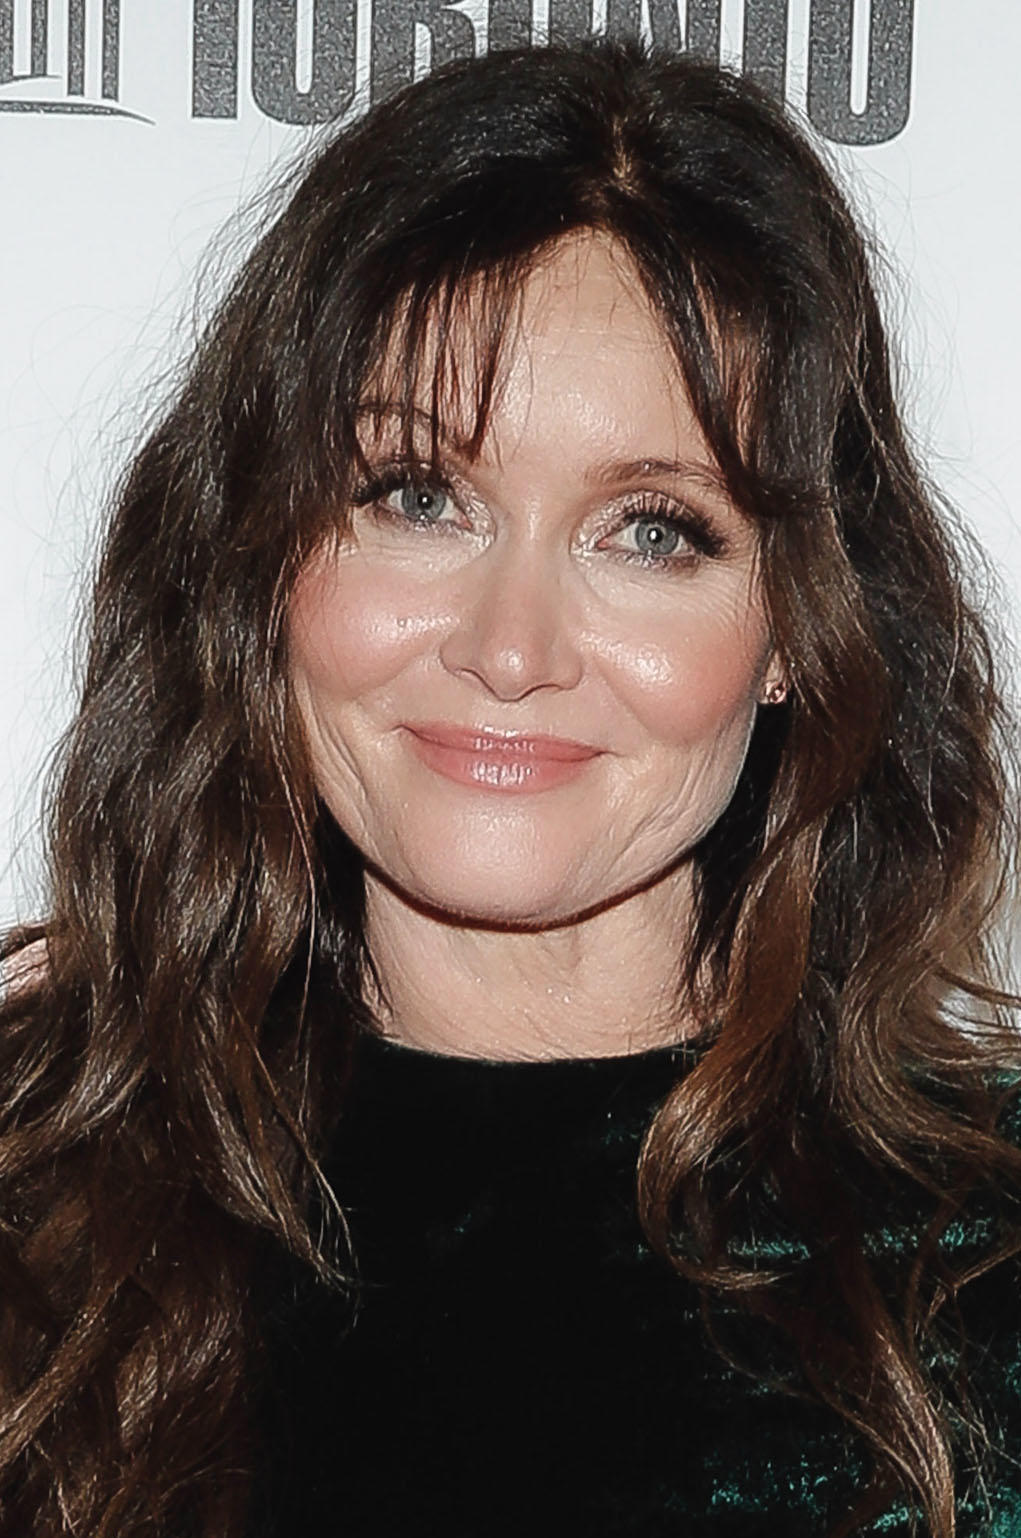 essie davis daughters